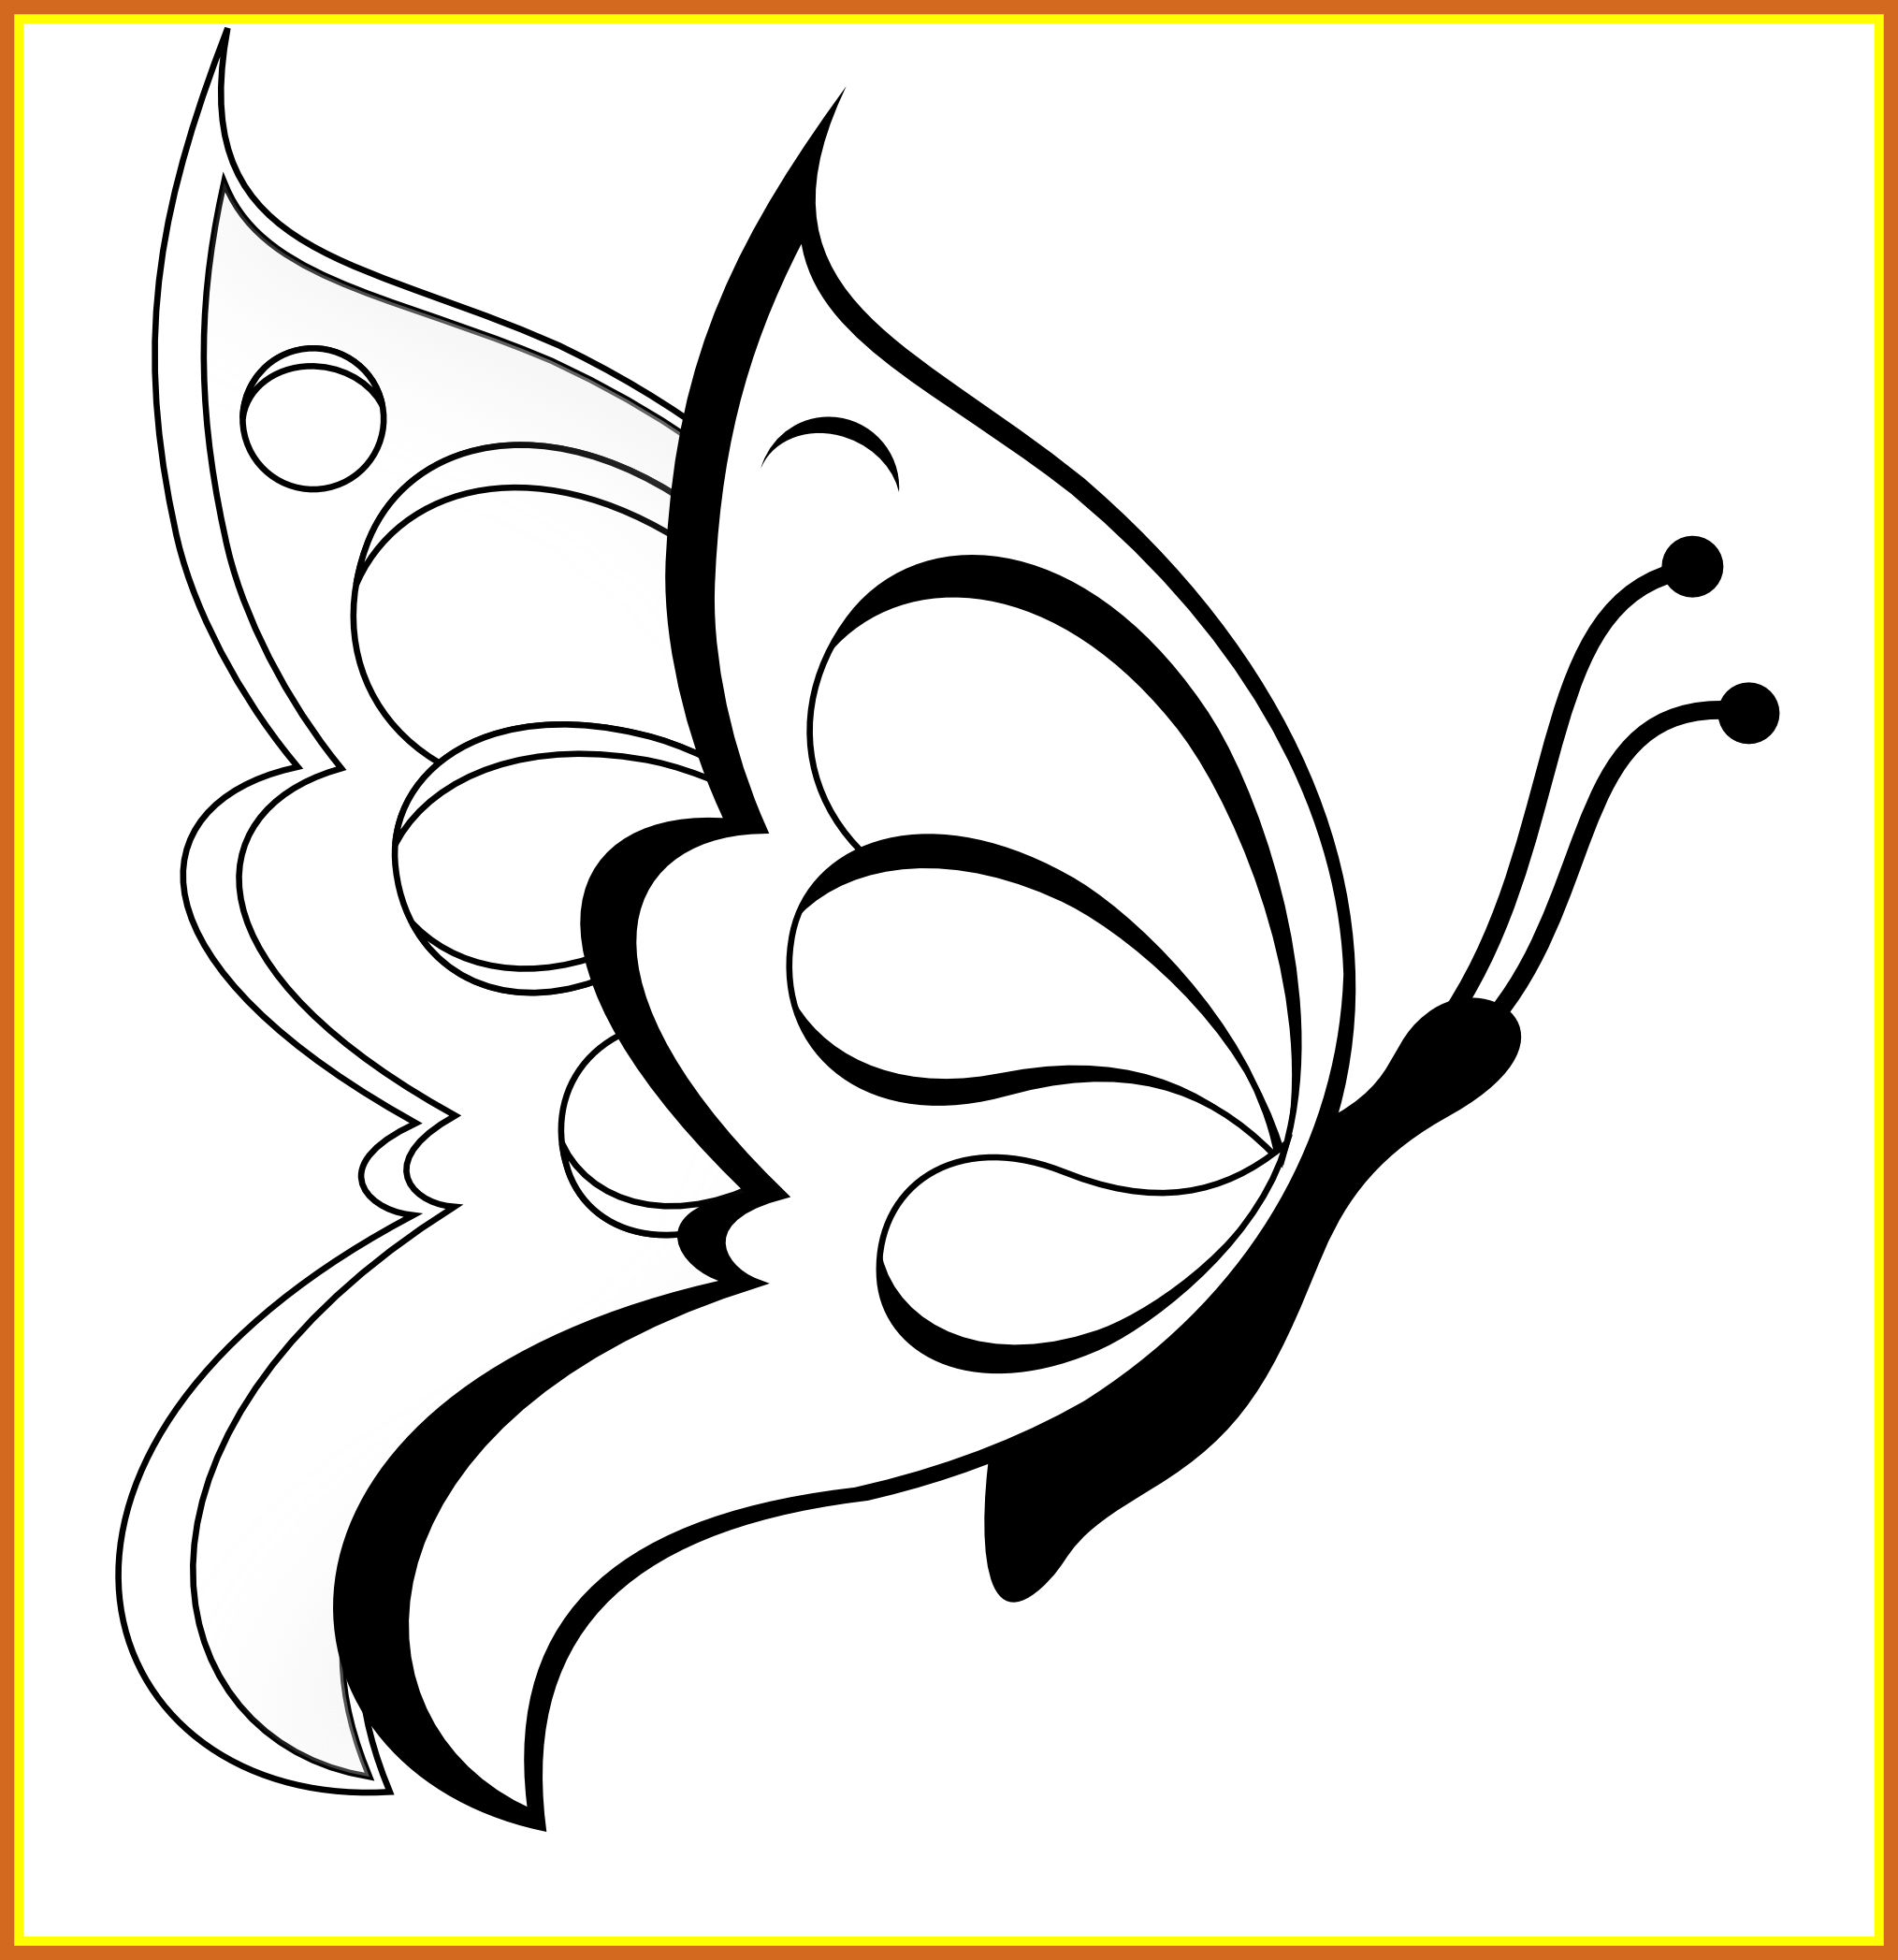 Sun flowers clipart black and white png library library Shocking Butterfly Clipart Black White Line Art Coloring Sheet Pics ... png library library